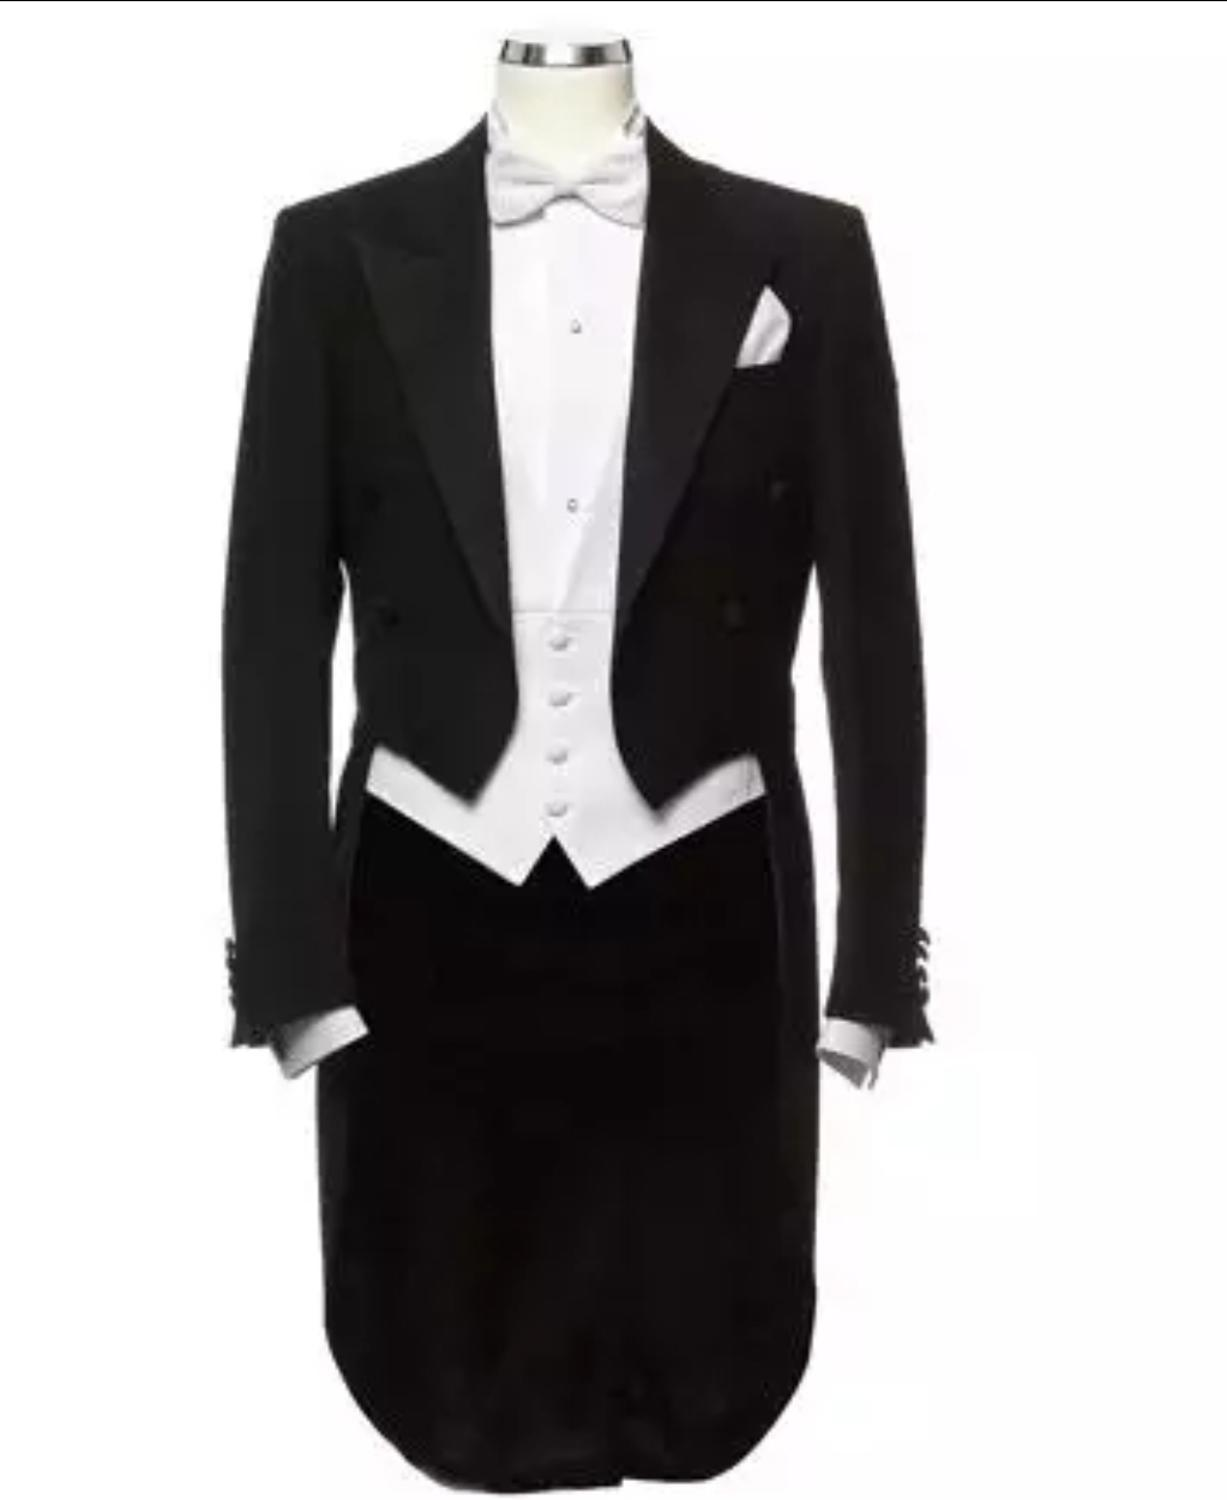 2020 Cloudstyle Men's Tailcoat Formal Ment Suit Slim Fit 3-Piece Suit Dinner Jacket  Wedding Suit Male Swallow-Tailed Coat